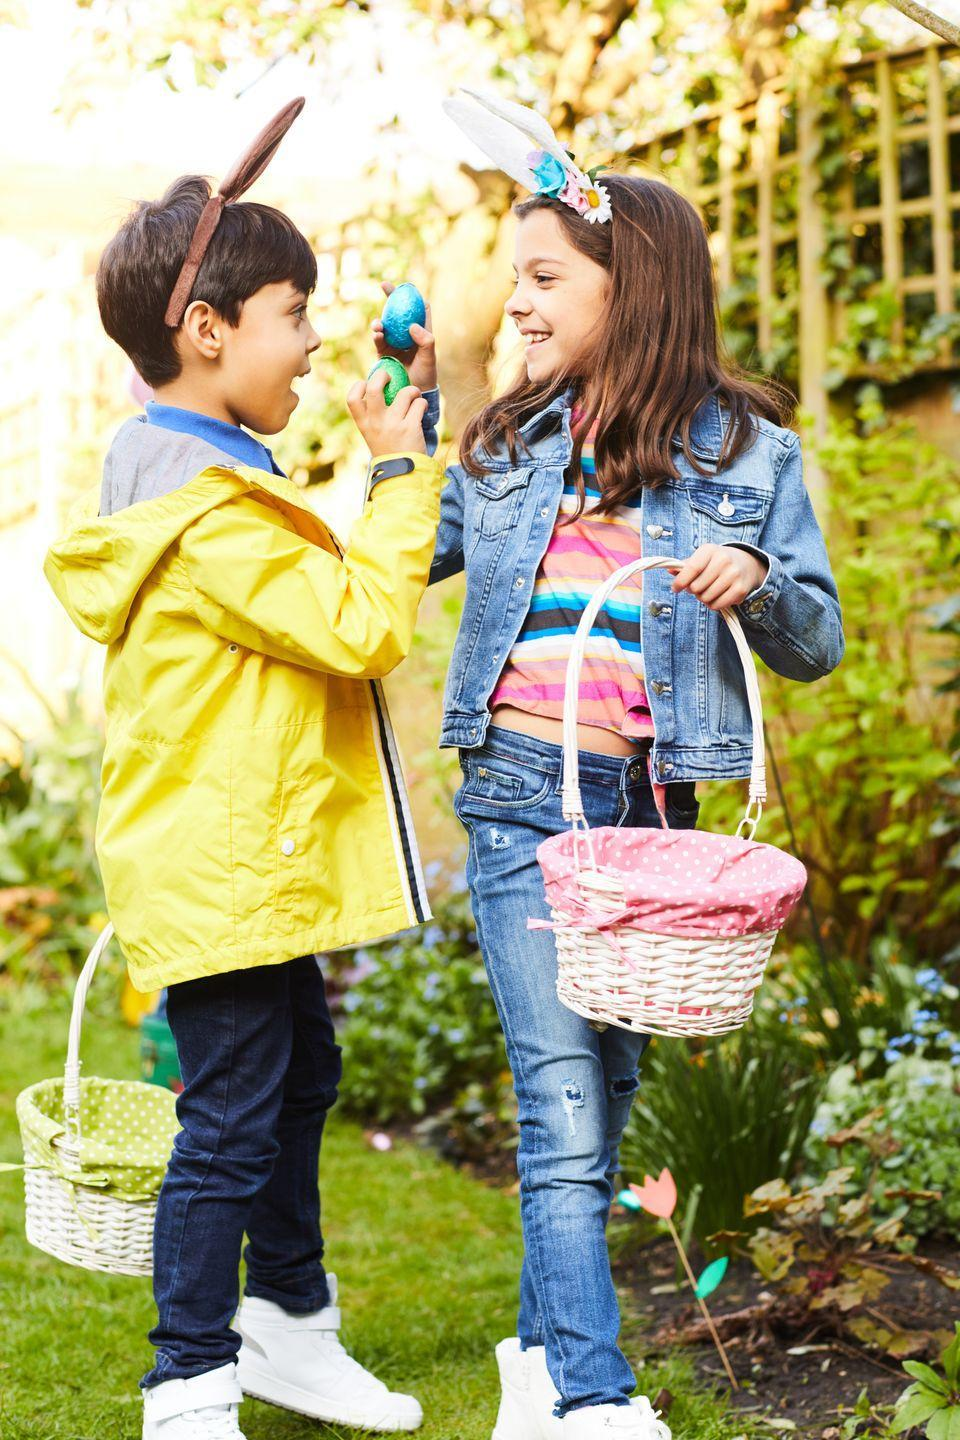 "<p>Split the kids into teams and have a member from each team search for an egg. Once they've found an egg, they tag the next teammate — just like a traditional relay race! </p><p><a href=""https://www.playpartyplan.com/10-fun-and-creative-easter-egg-hunt/"" rel=""nofollow noopener"" target=""_blank"" data-ylk=""slk:Get the tutorial from Play Party Plan »"" class=""link rapid-noclick-resp""><em>Get the tutorial from Play Party Plan »</em></a></p>"